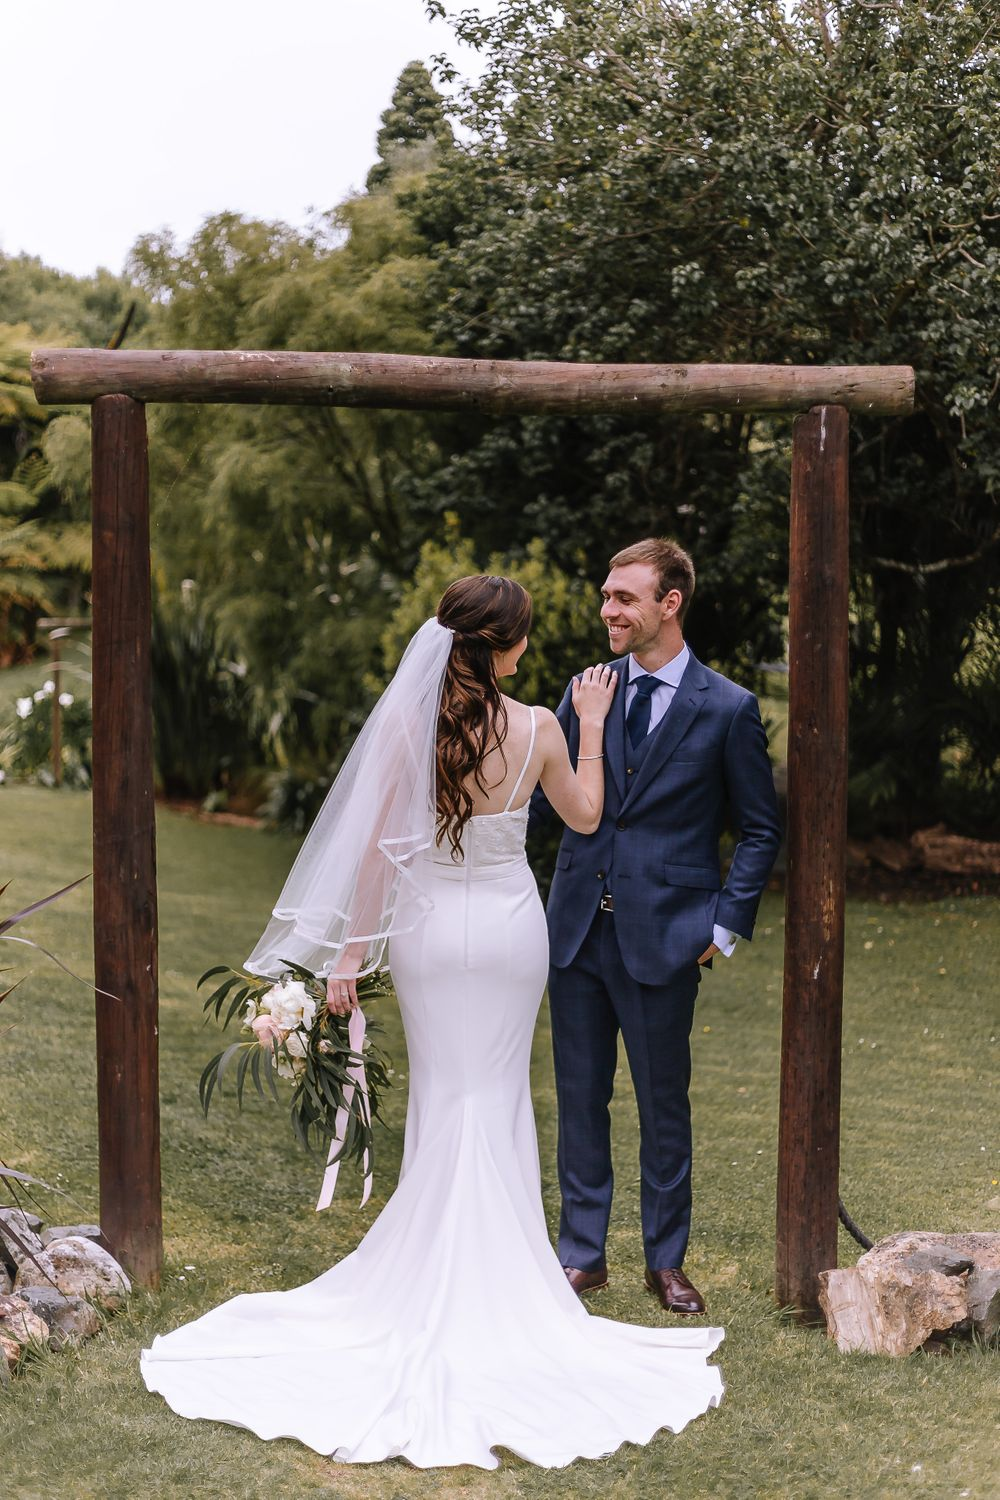 Leah and Grant Bride Dress - Hush Boutique Coromandel